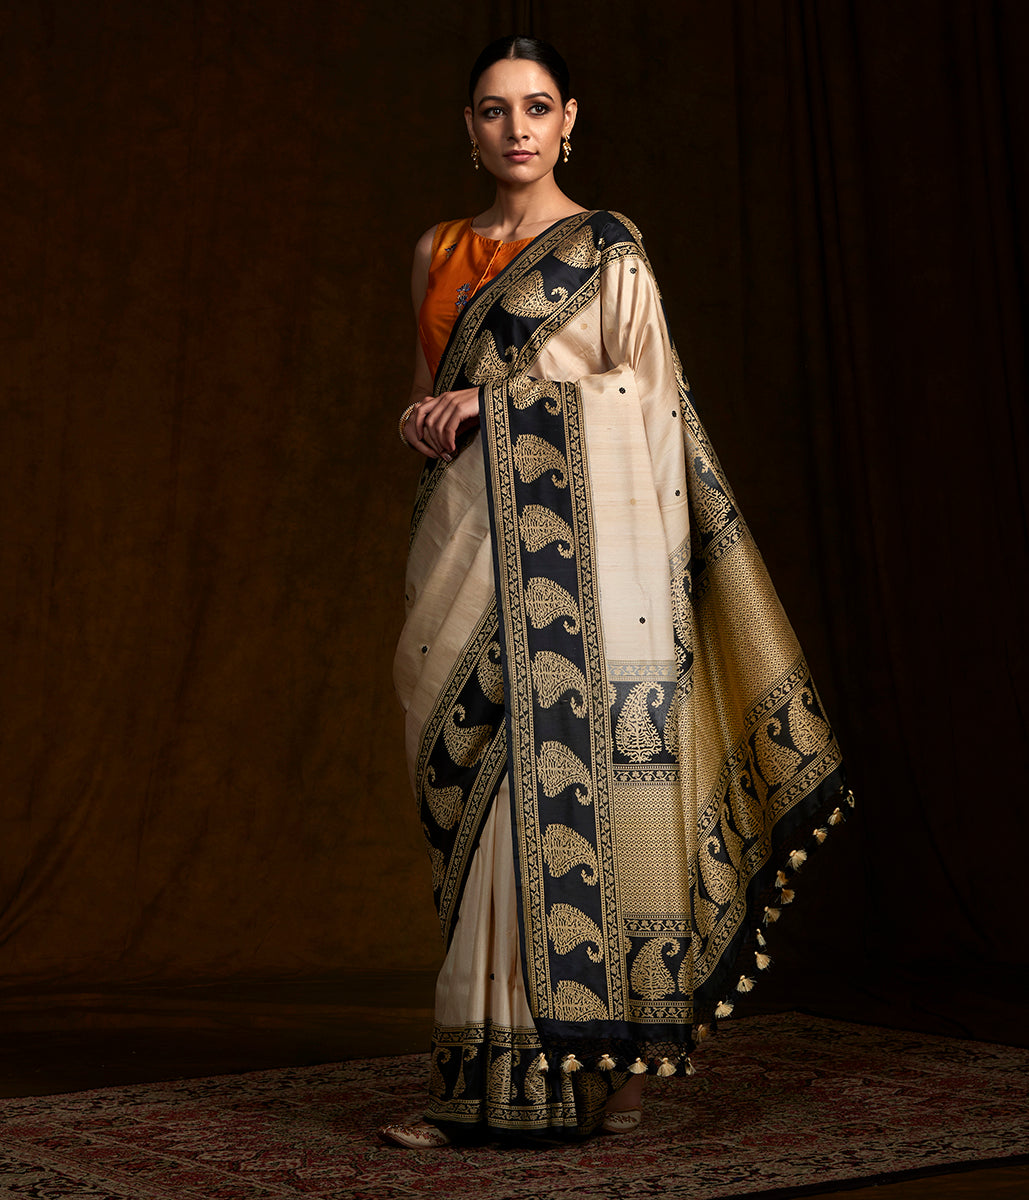 Handwoven banarasi tusser silk saree with katan silk borders and paisley motifs in border